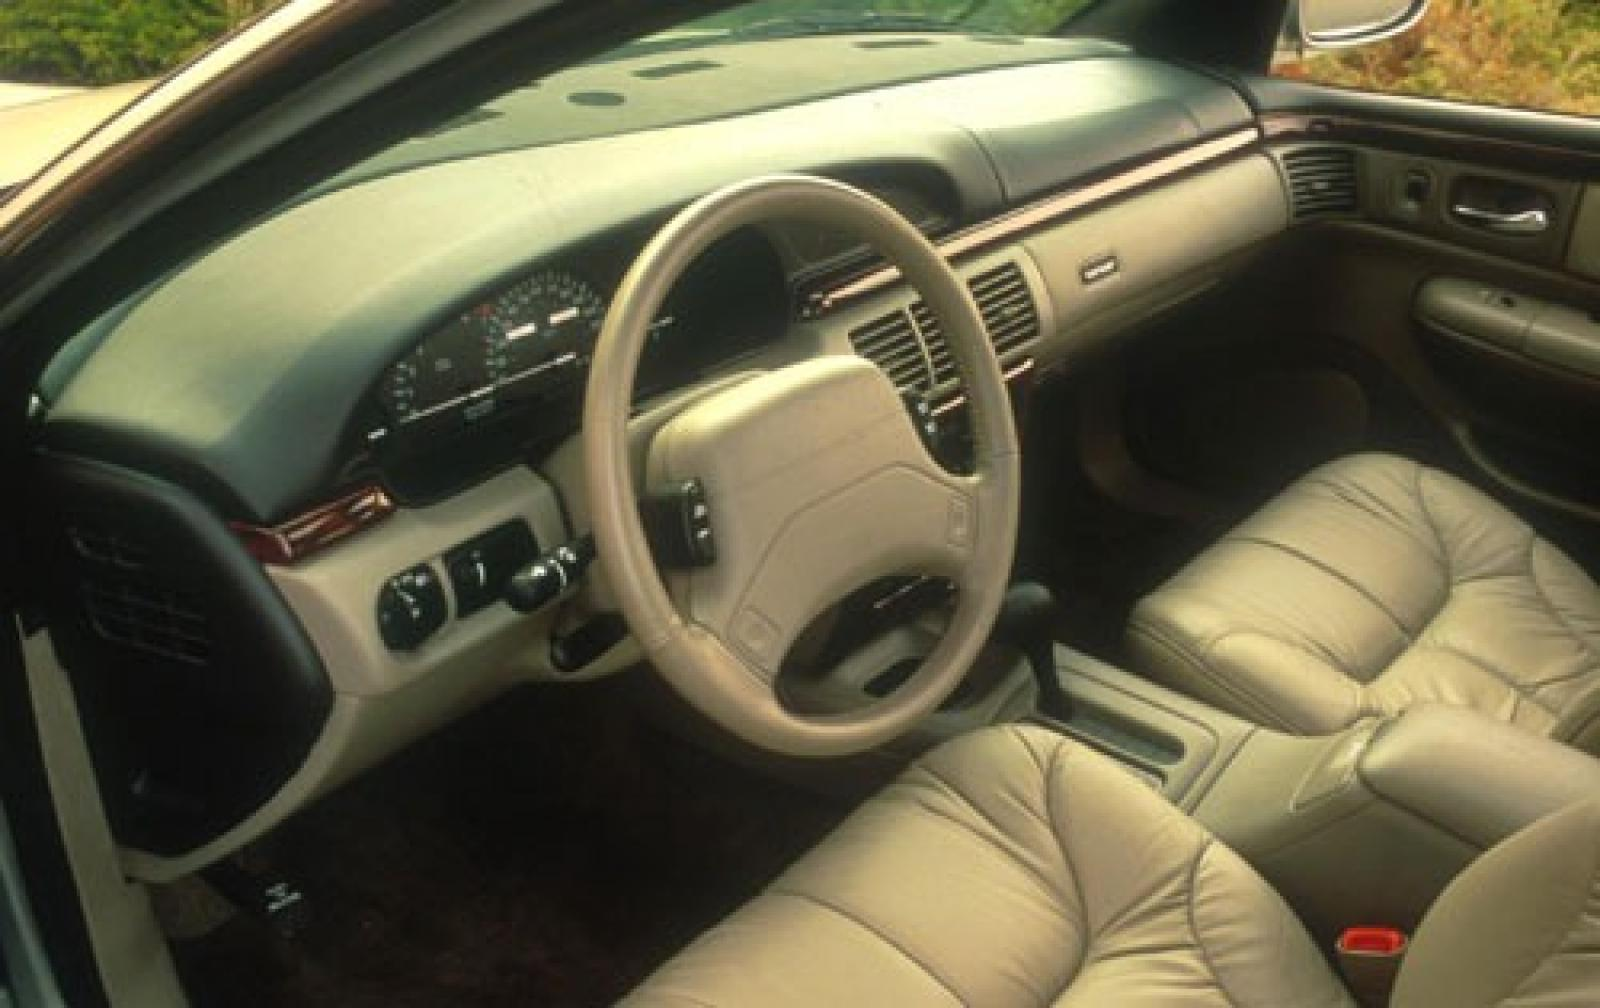 1994 Chrysler Concorde Stereo Wiring Diagram Schematics and